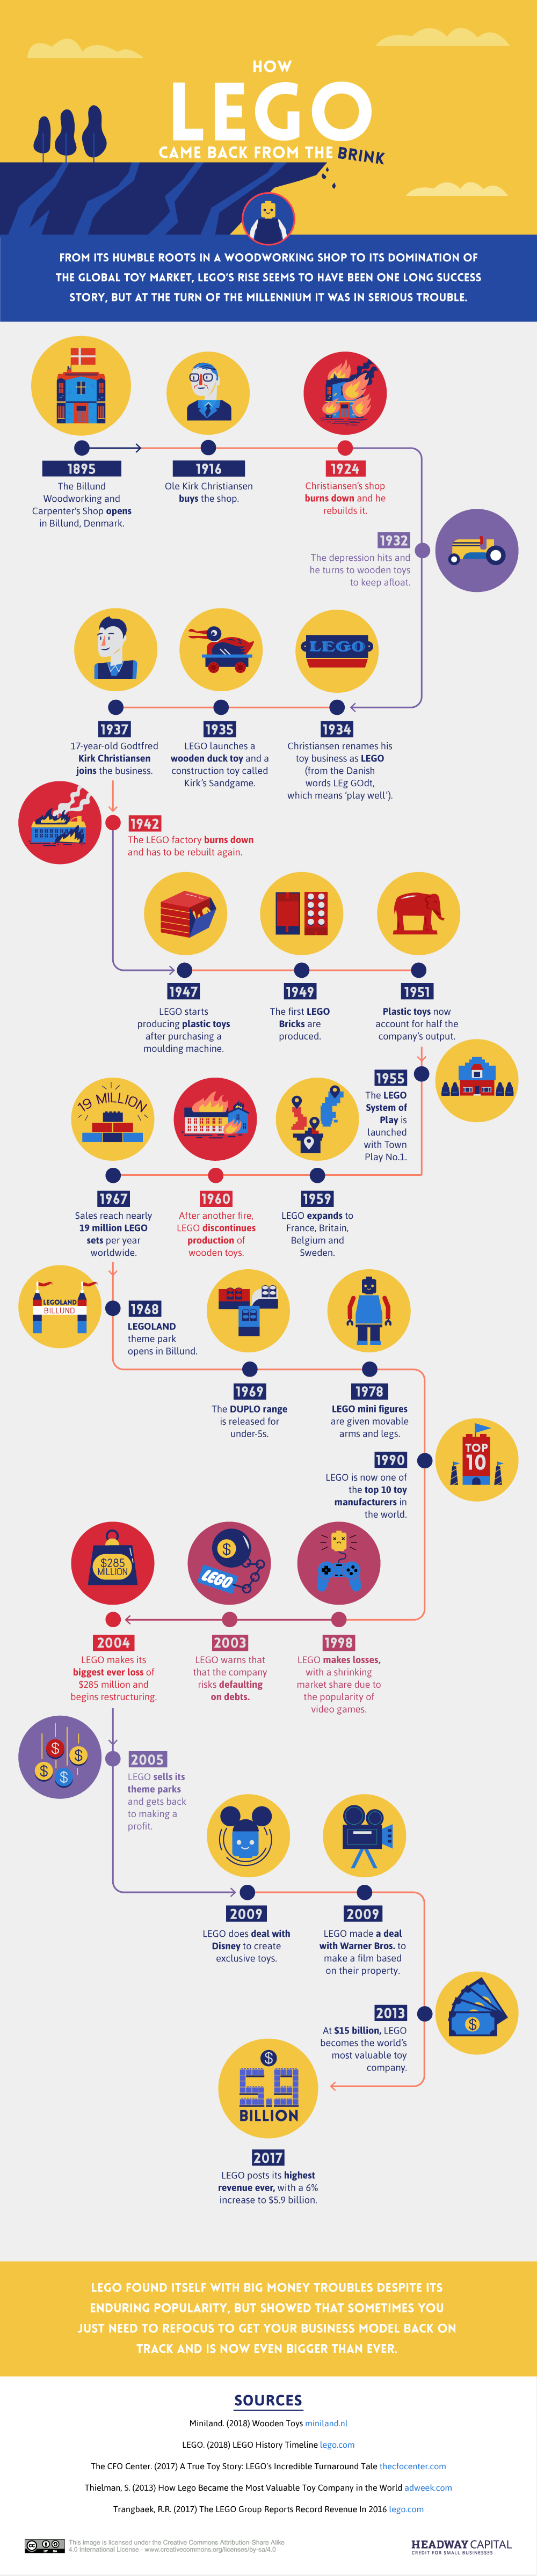 How LEGO came back from the brink [INFOGRAPHIC]